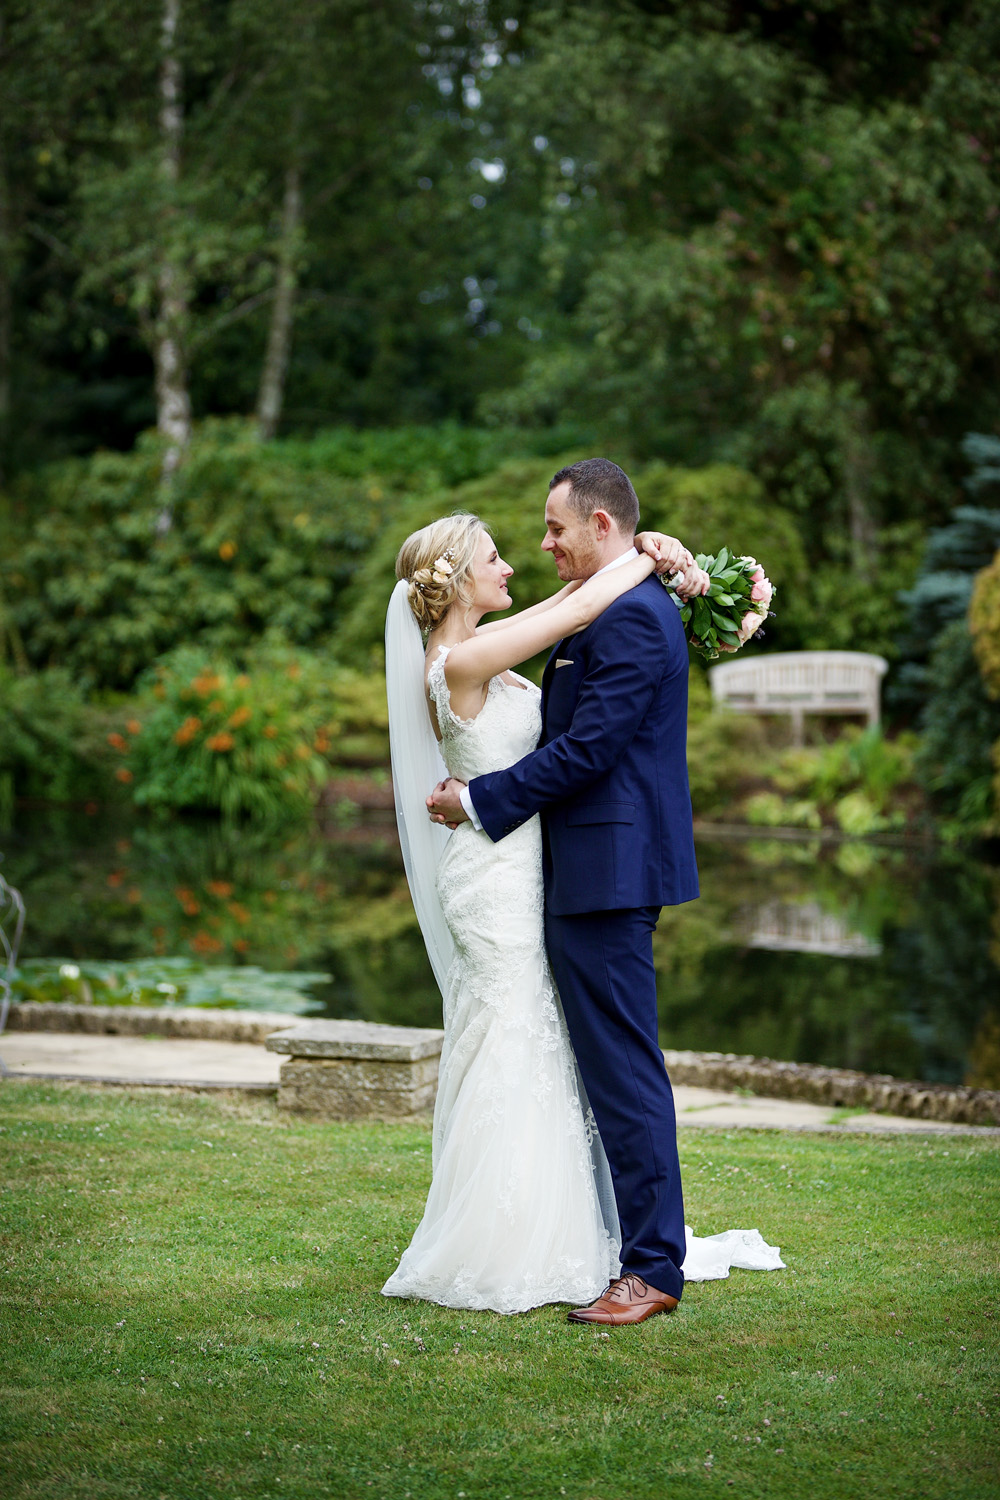 Rivervale_Barn_Wedding_Photographer_Yateley_127.jpg